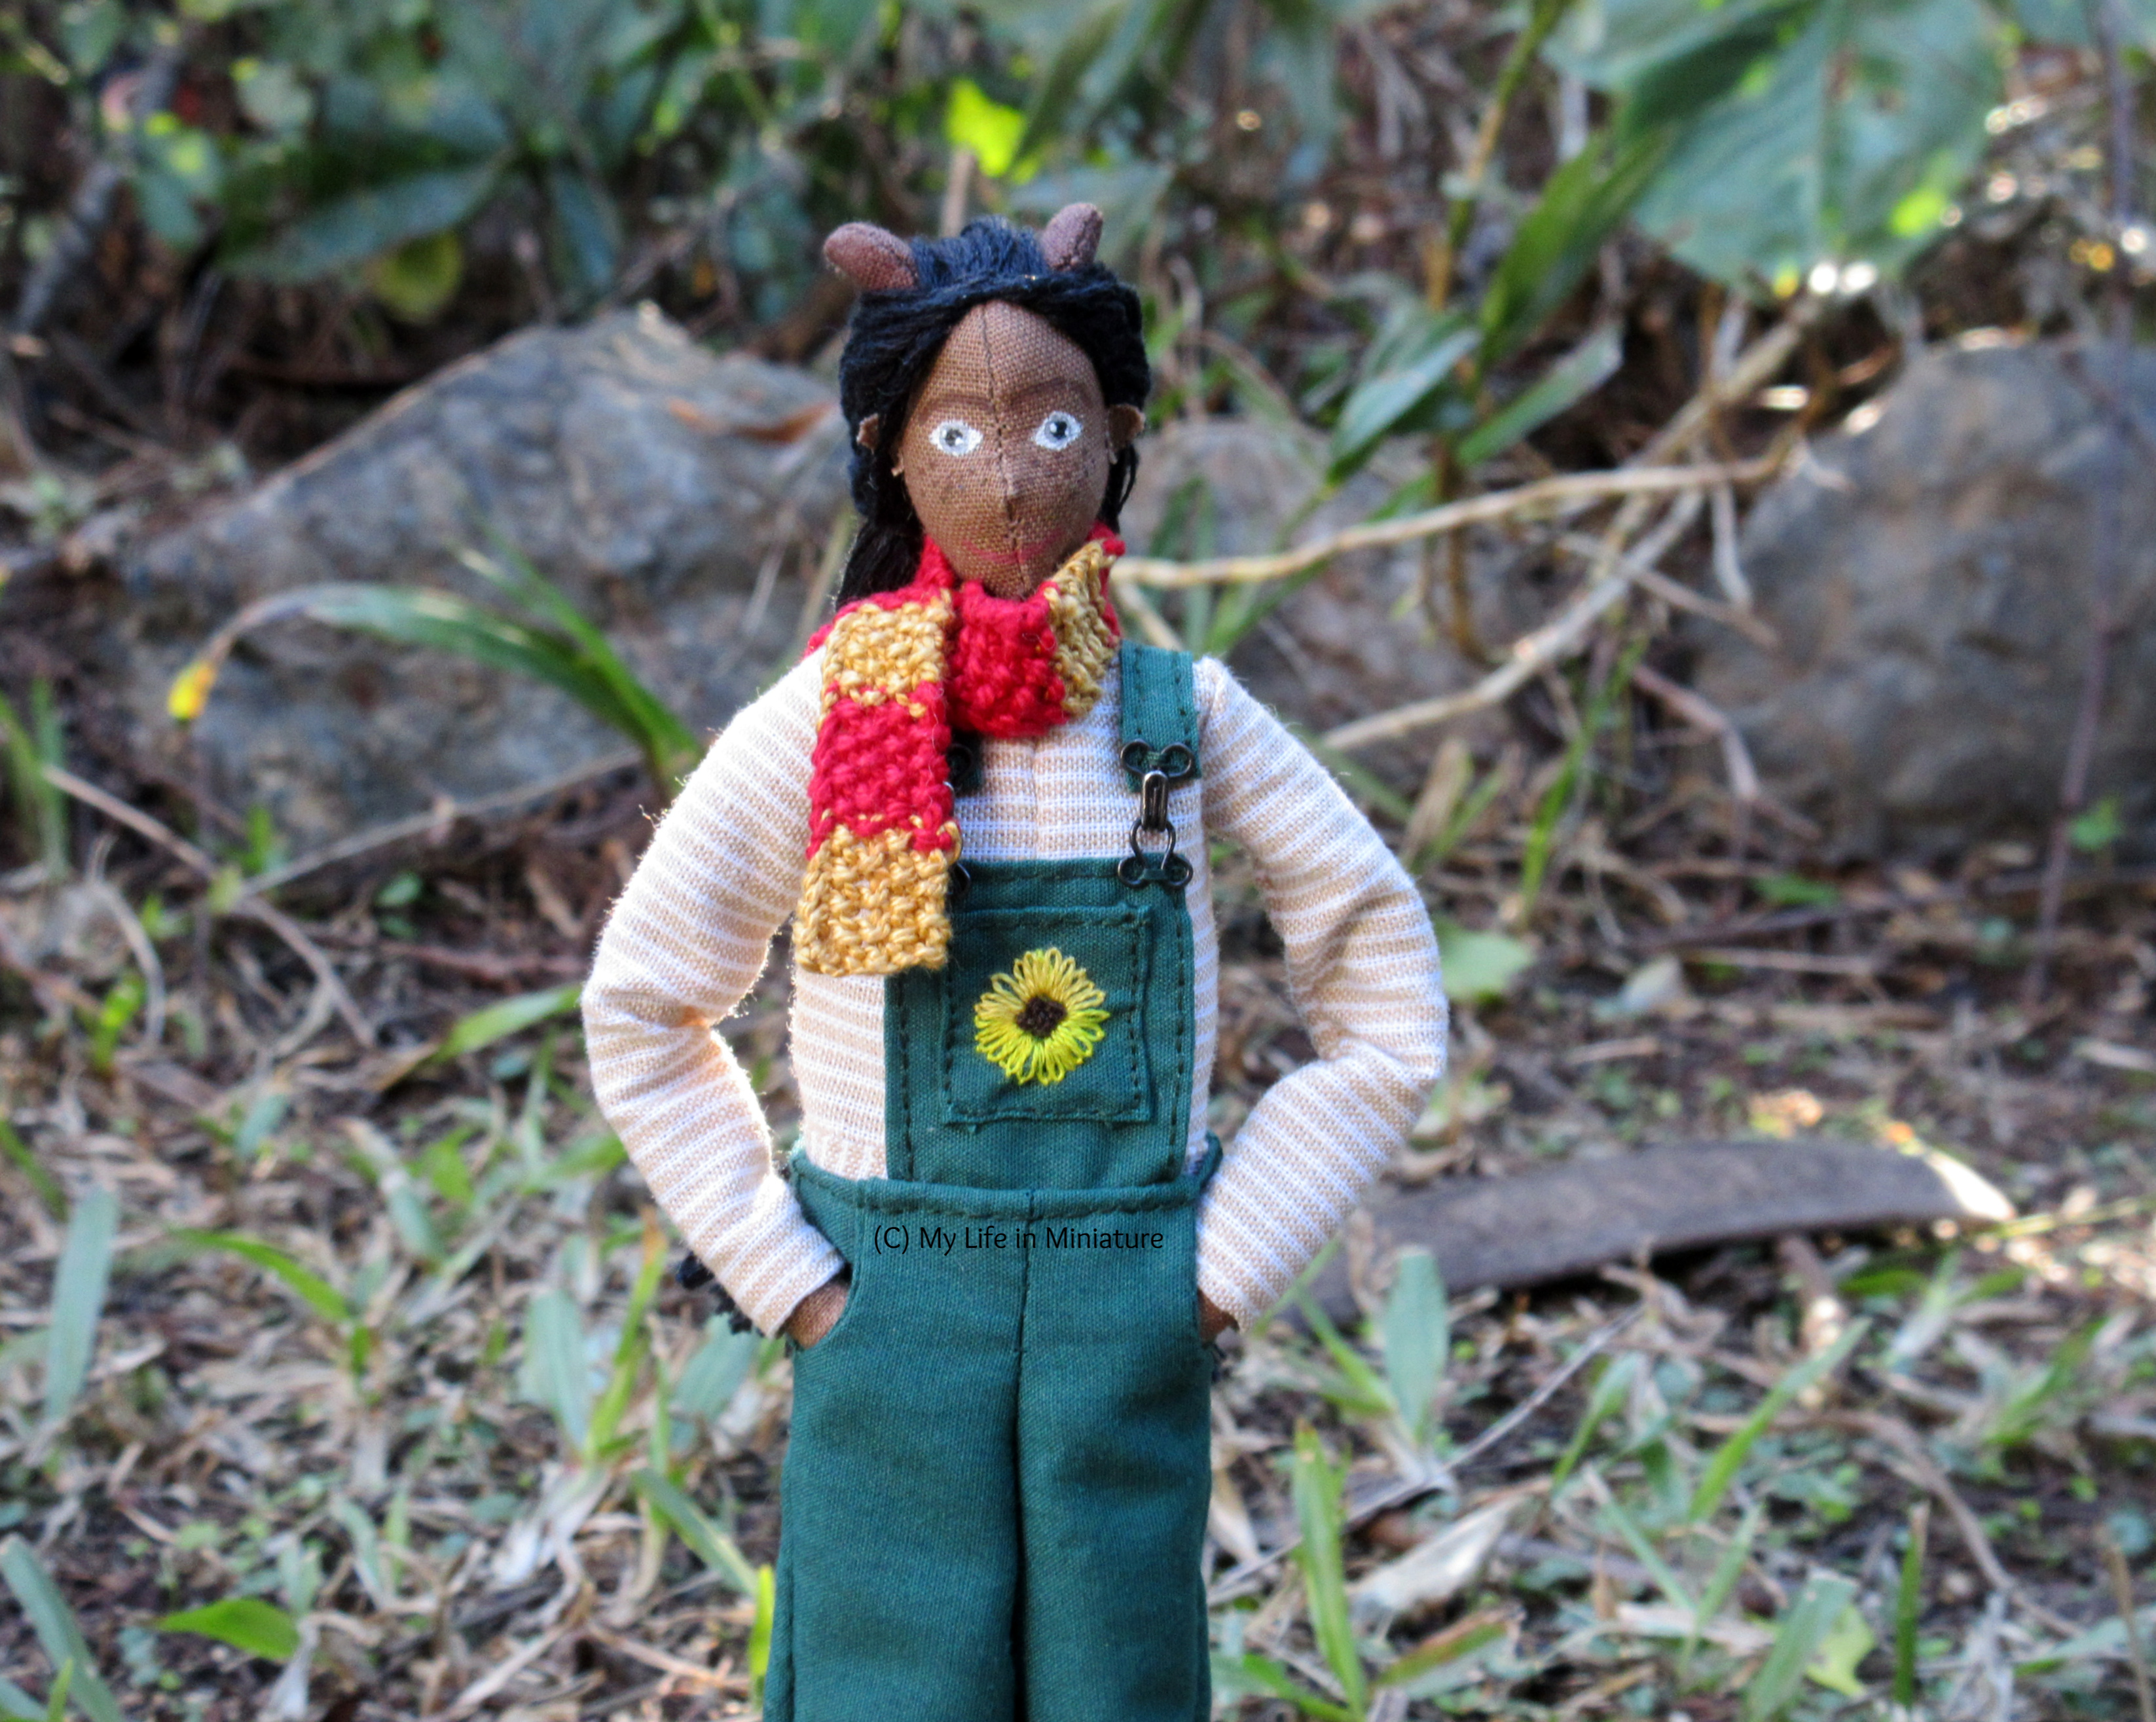 Petra stands outside with grass and greenery behind her. She wears the long-sleeved top, her green dungarees, and a knitted red-and-gold scarf. Her hands are in her pockets.